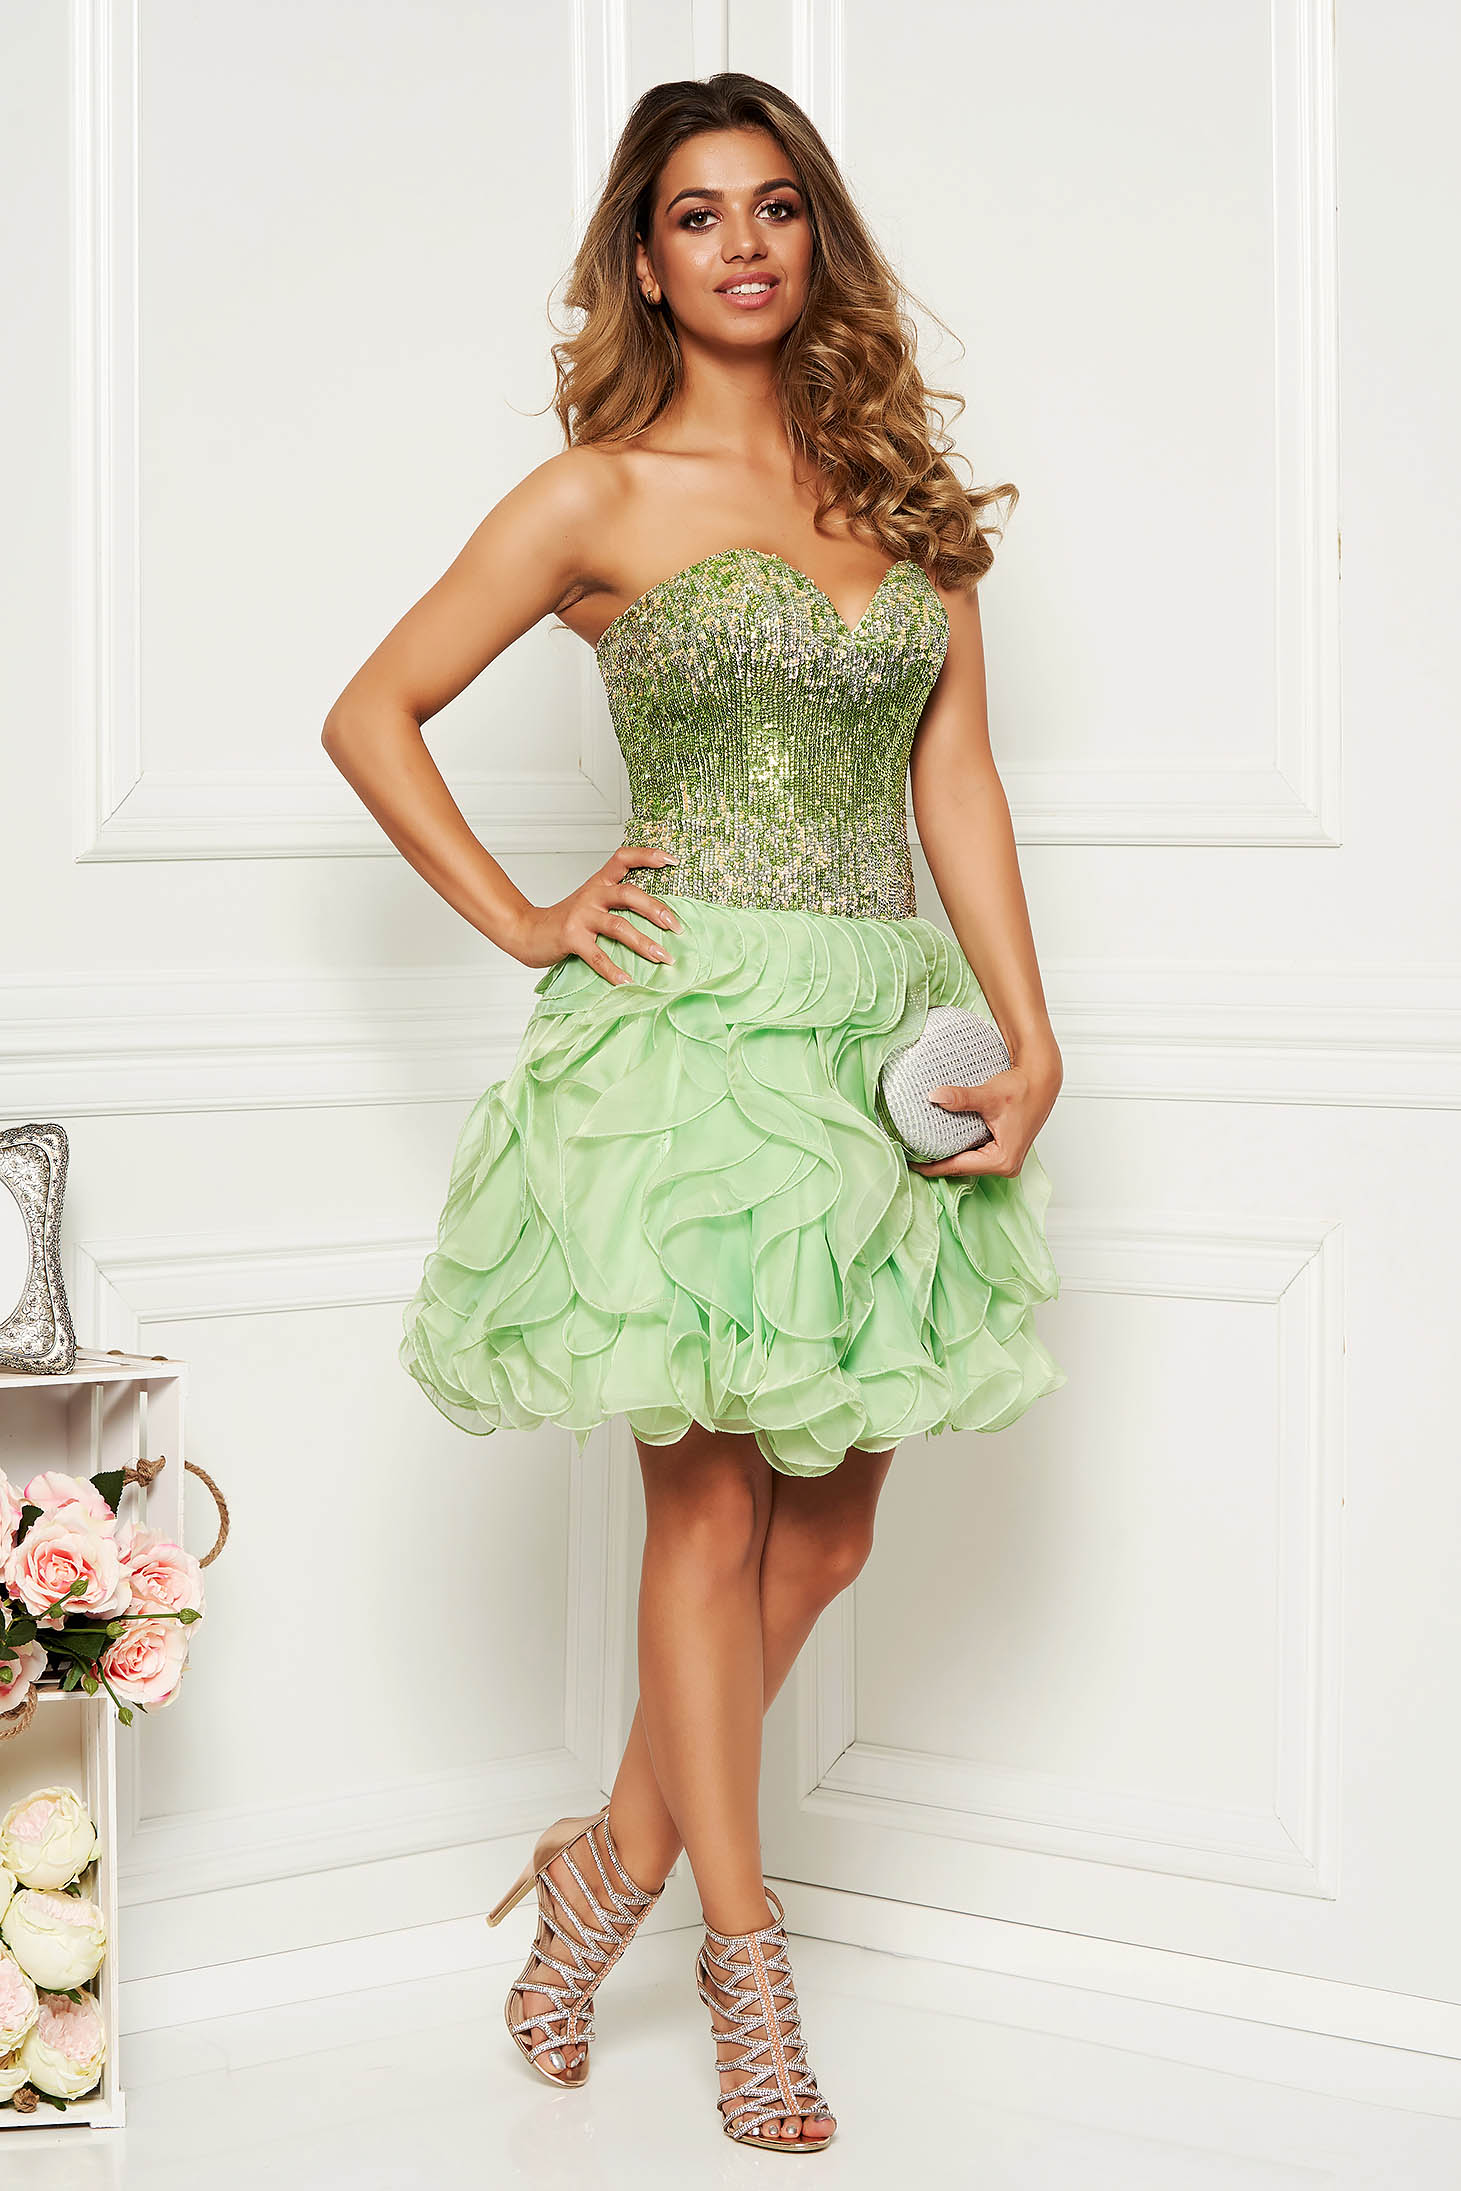 Sherri Hill green dress luxurious with a cleavage with sequin embellished details with push-up cups occasional